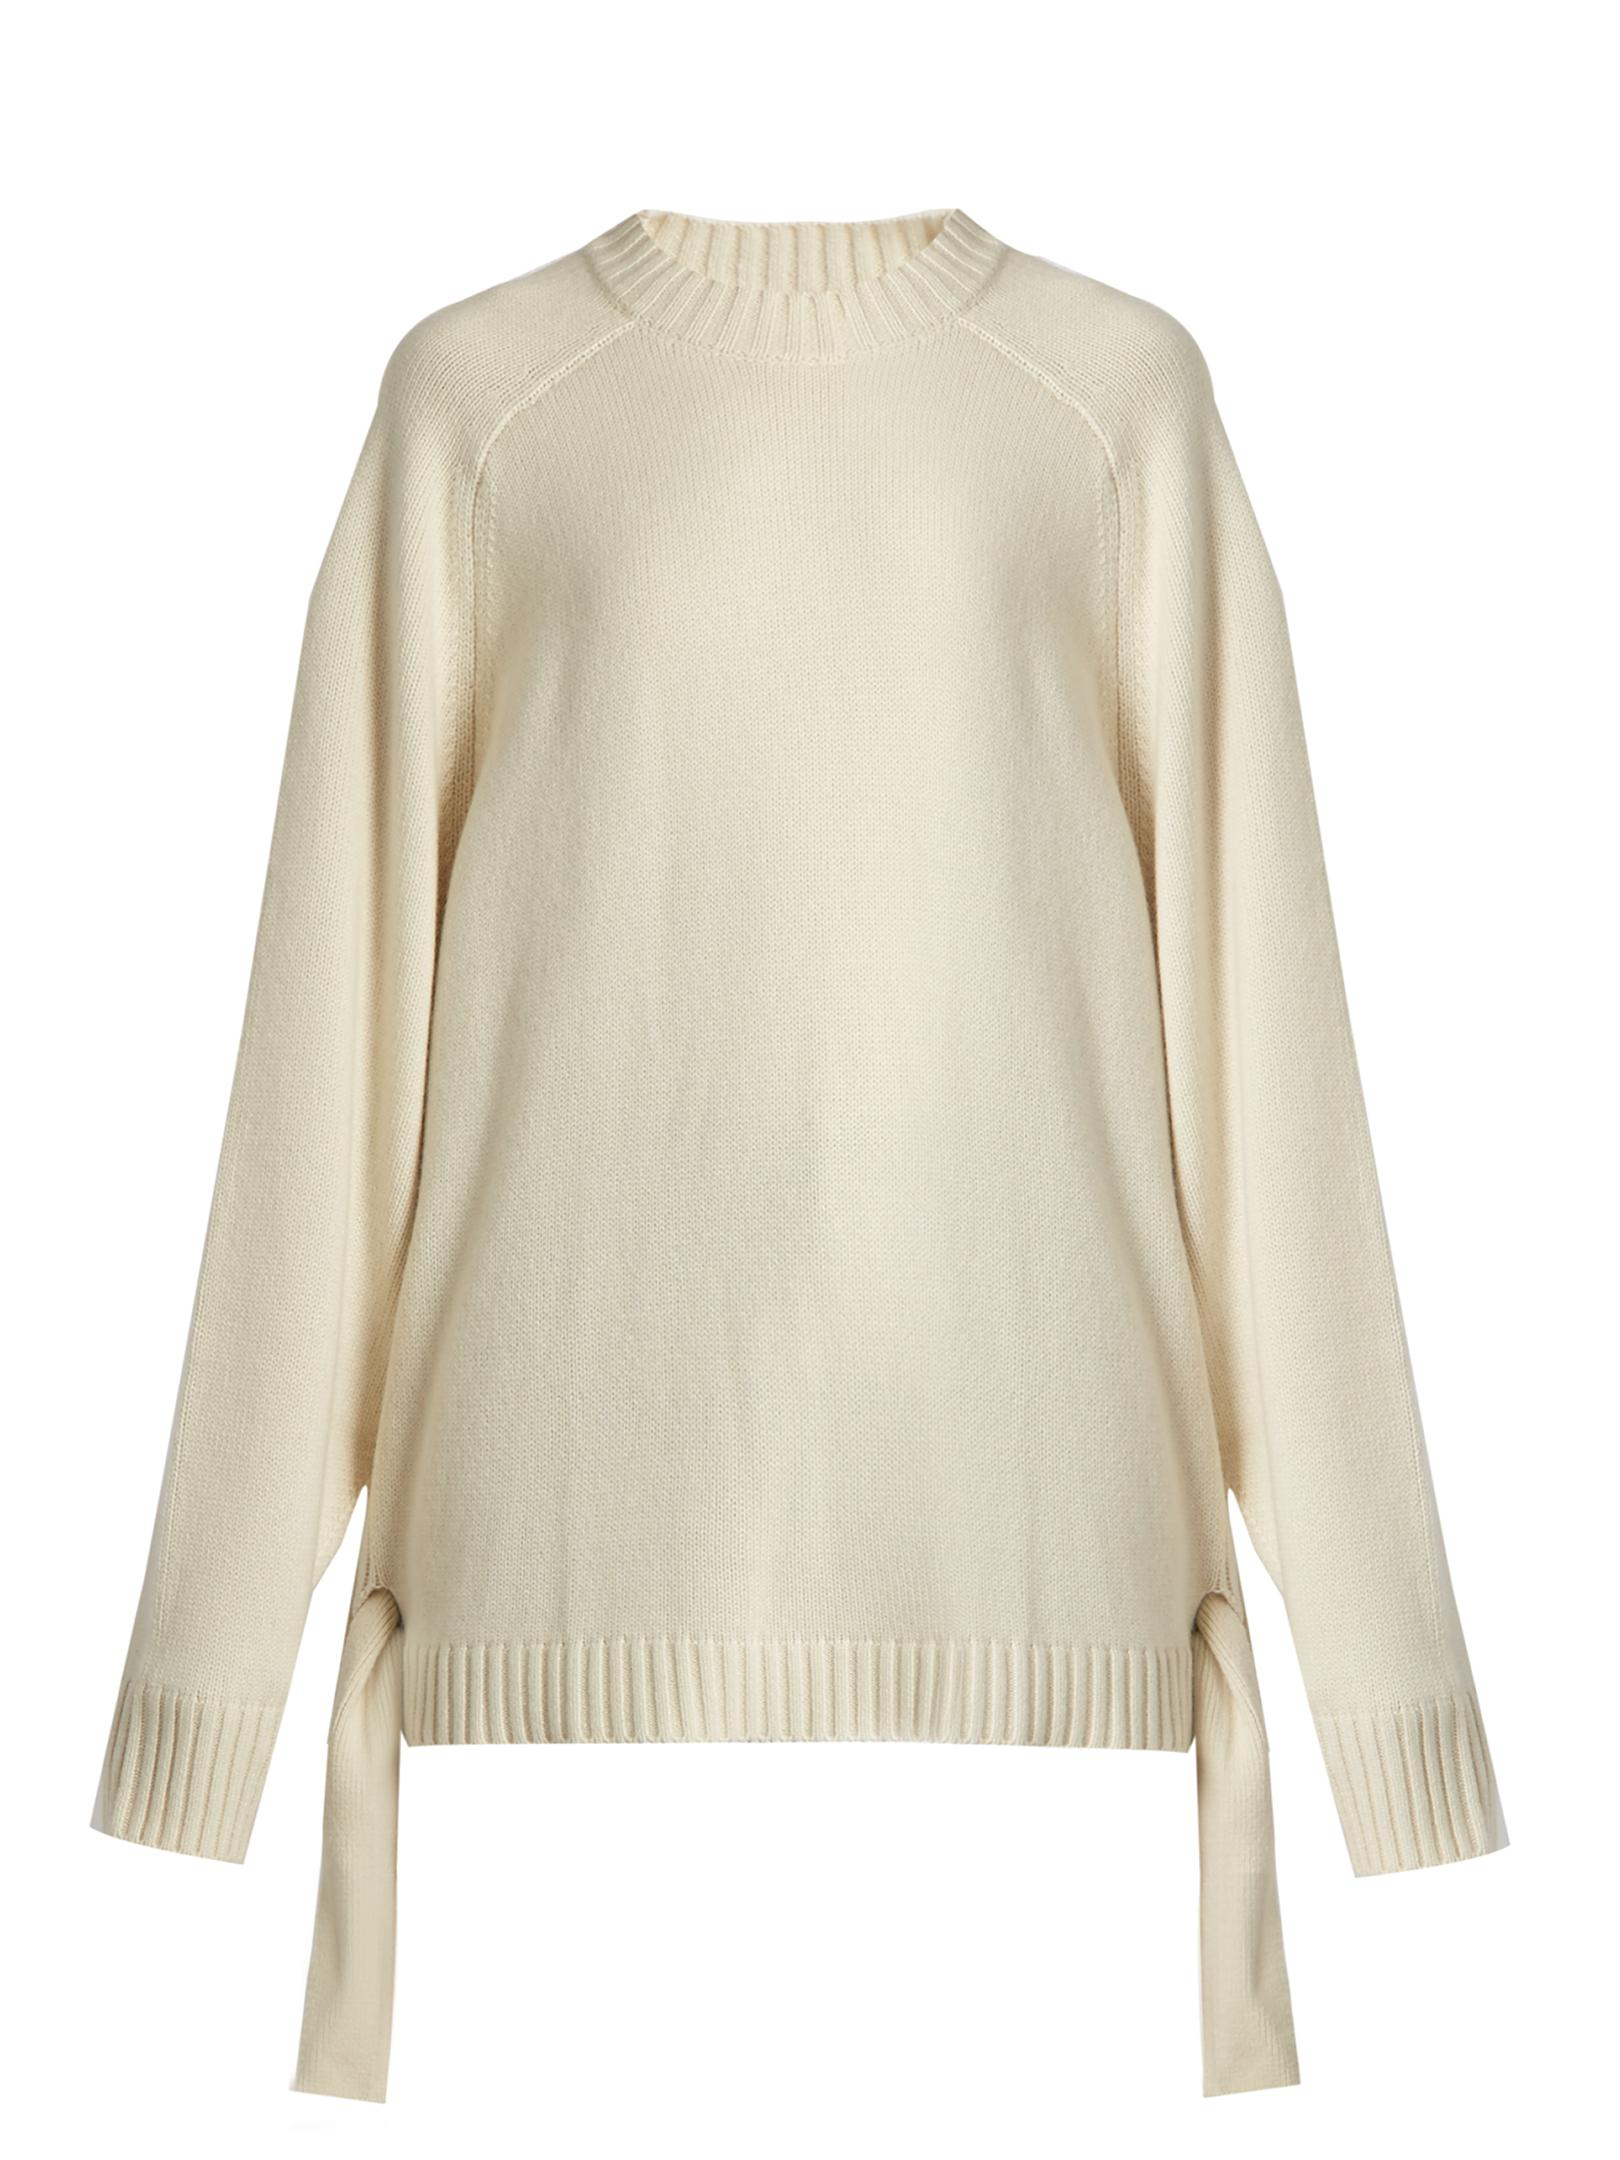 Tibi Tie-side Cashmere Sweater in White | Lyst